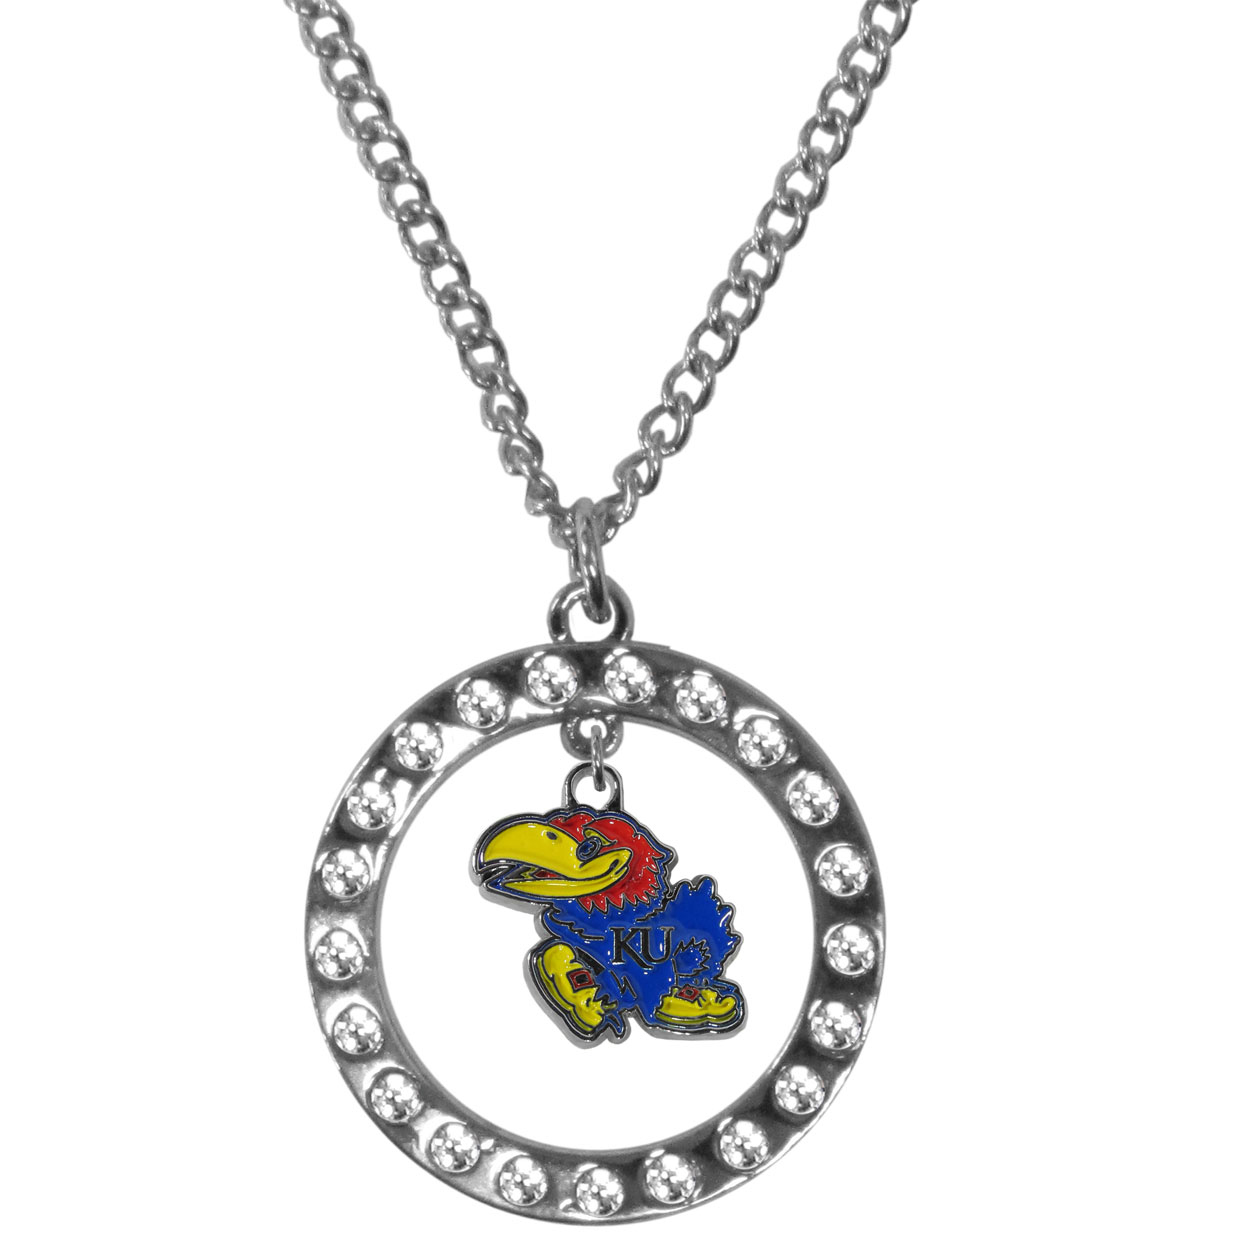 Kansas Jayhawks Rhinestone Hoop Necklaces - Our Kansas Jayhawks rhinestone hoop necklace comes on an 18 inch chain and features a hoop covered in rhinestones with a high polish chrome finish and a cast and enameled team charm dangling in the center.